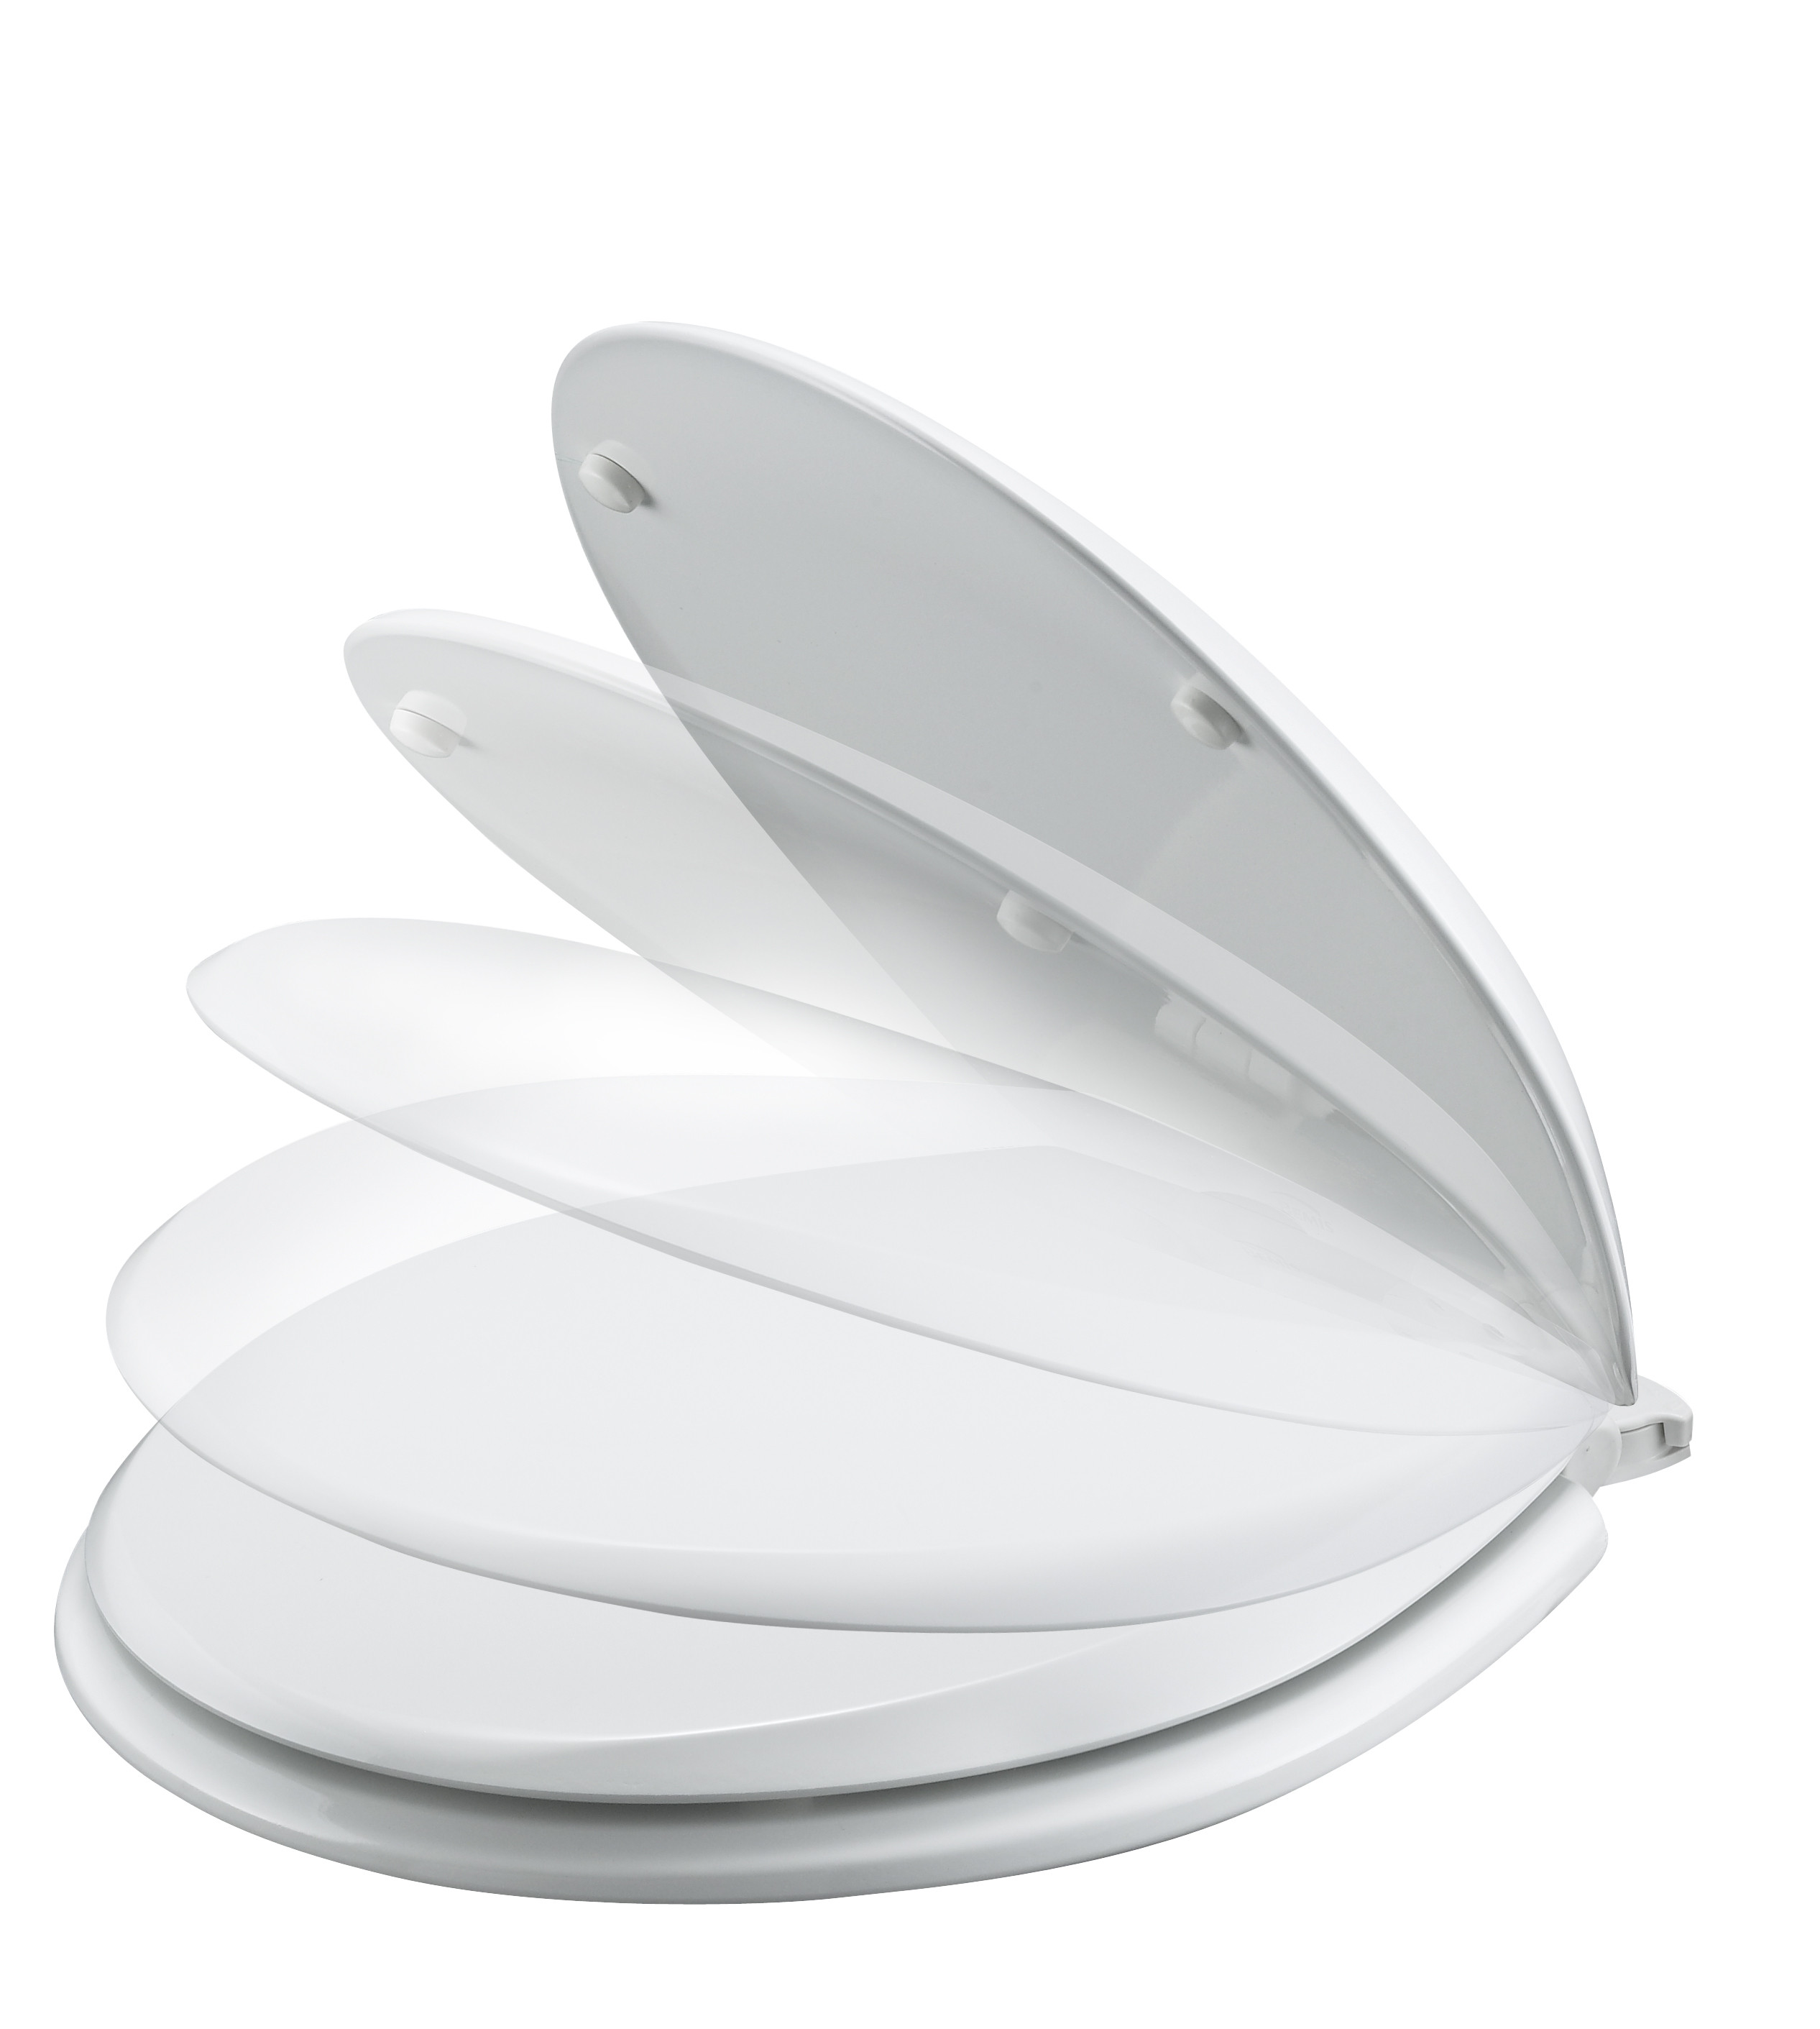 Soft Close Toilet Seat White Complete with S/Steel Hinge (Galaxy)